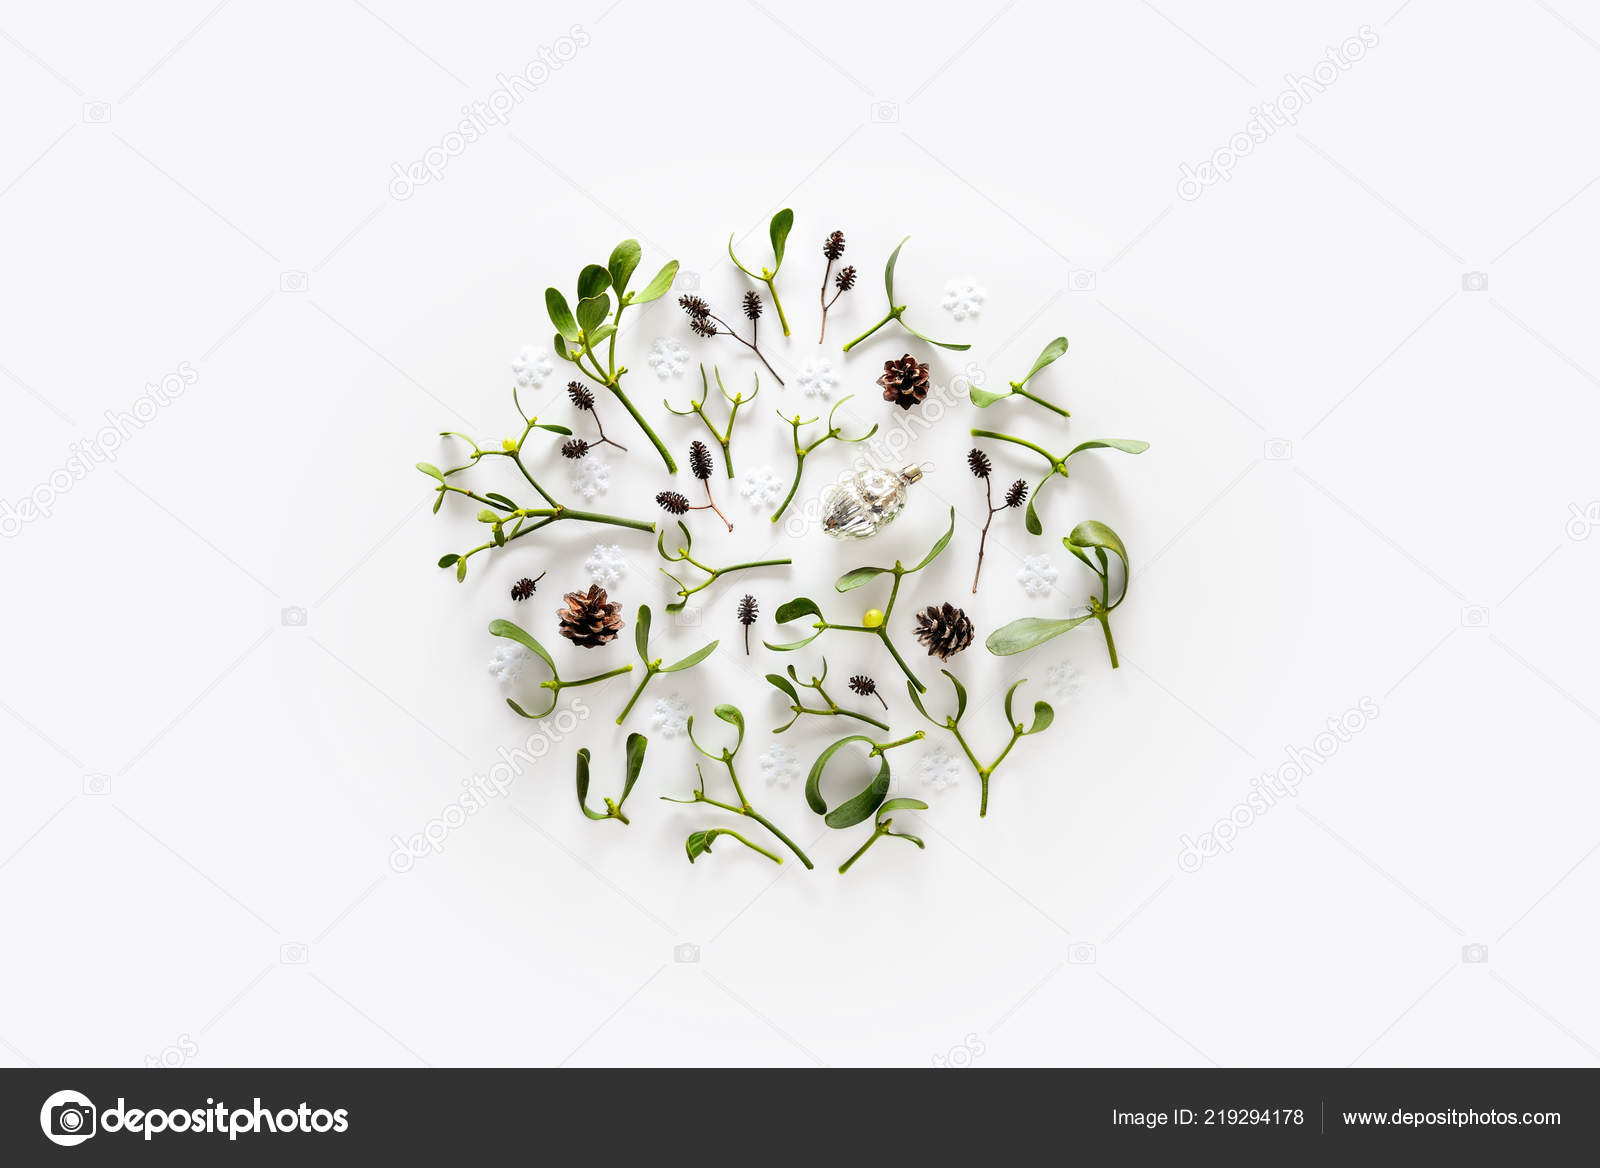 Christmas Greeting Card Template Mistletoe Small Branches Cones Decorative Composition Stock Photo Image By C Fortyforks 219294178